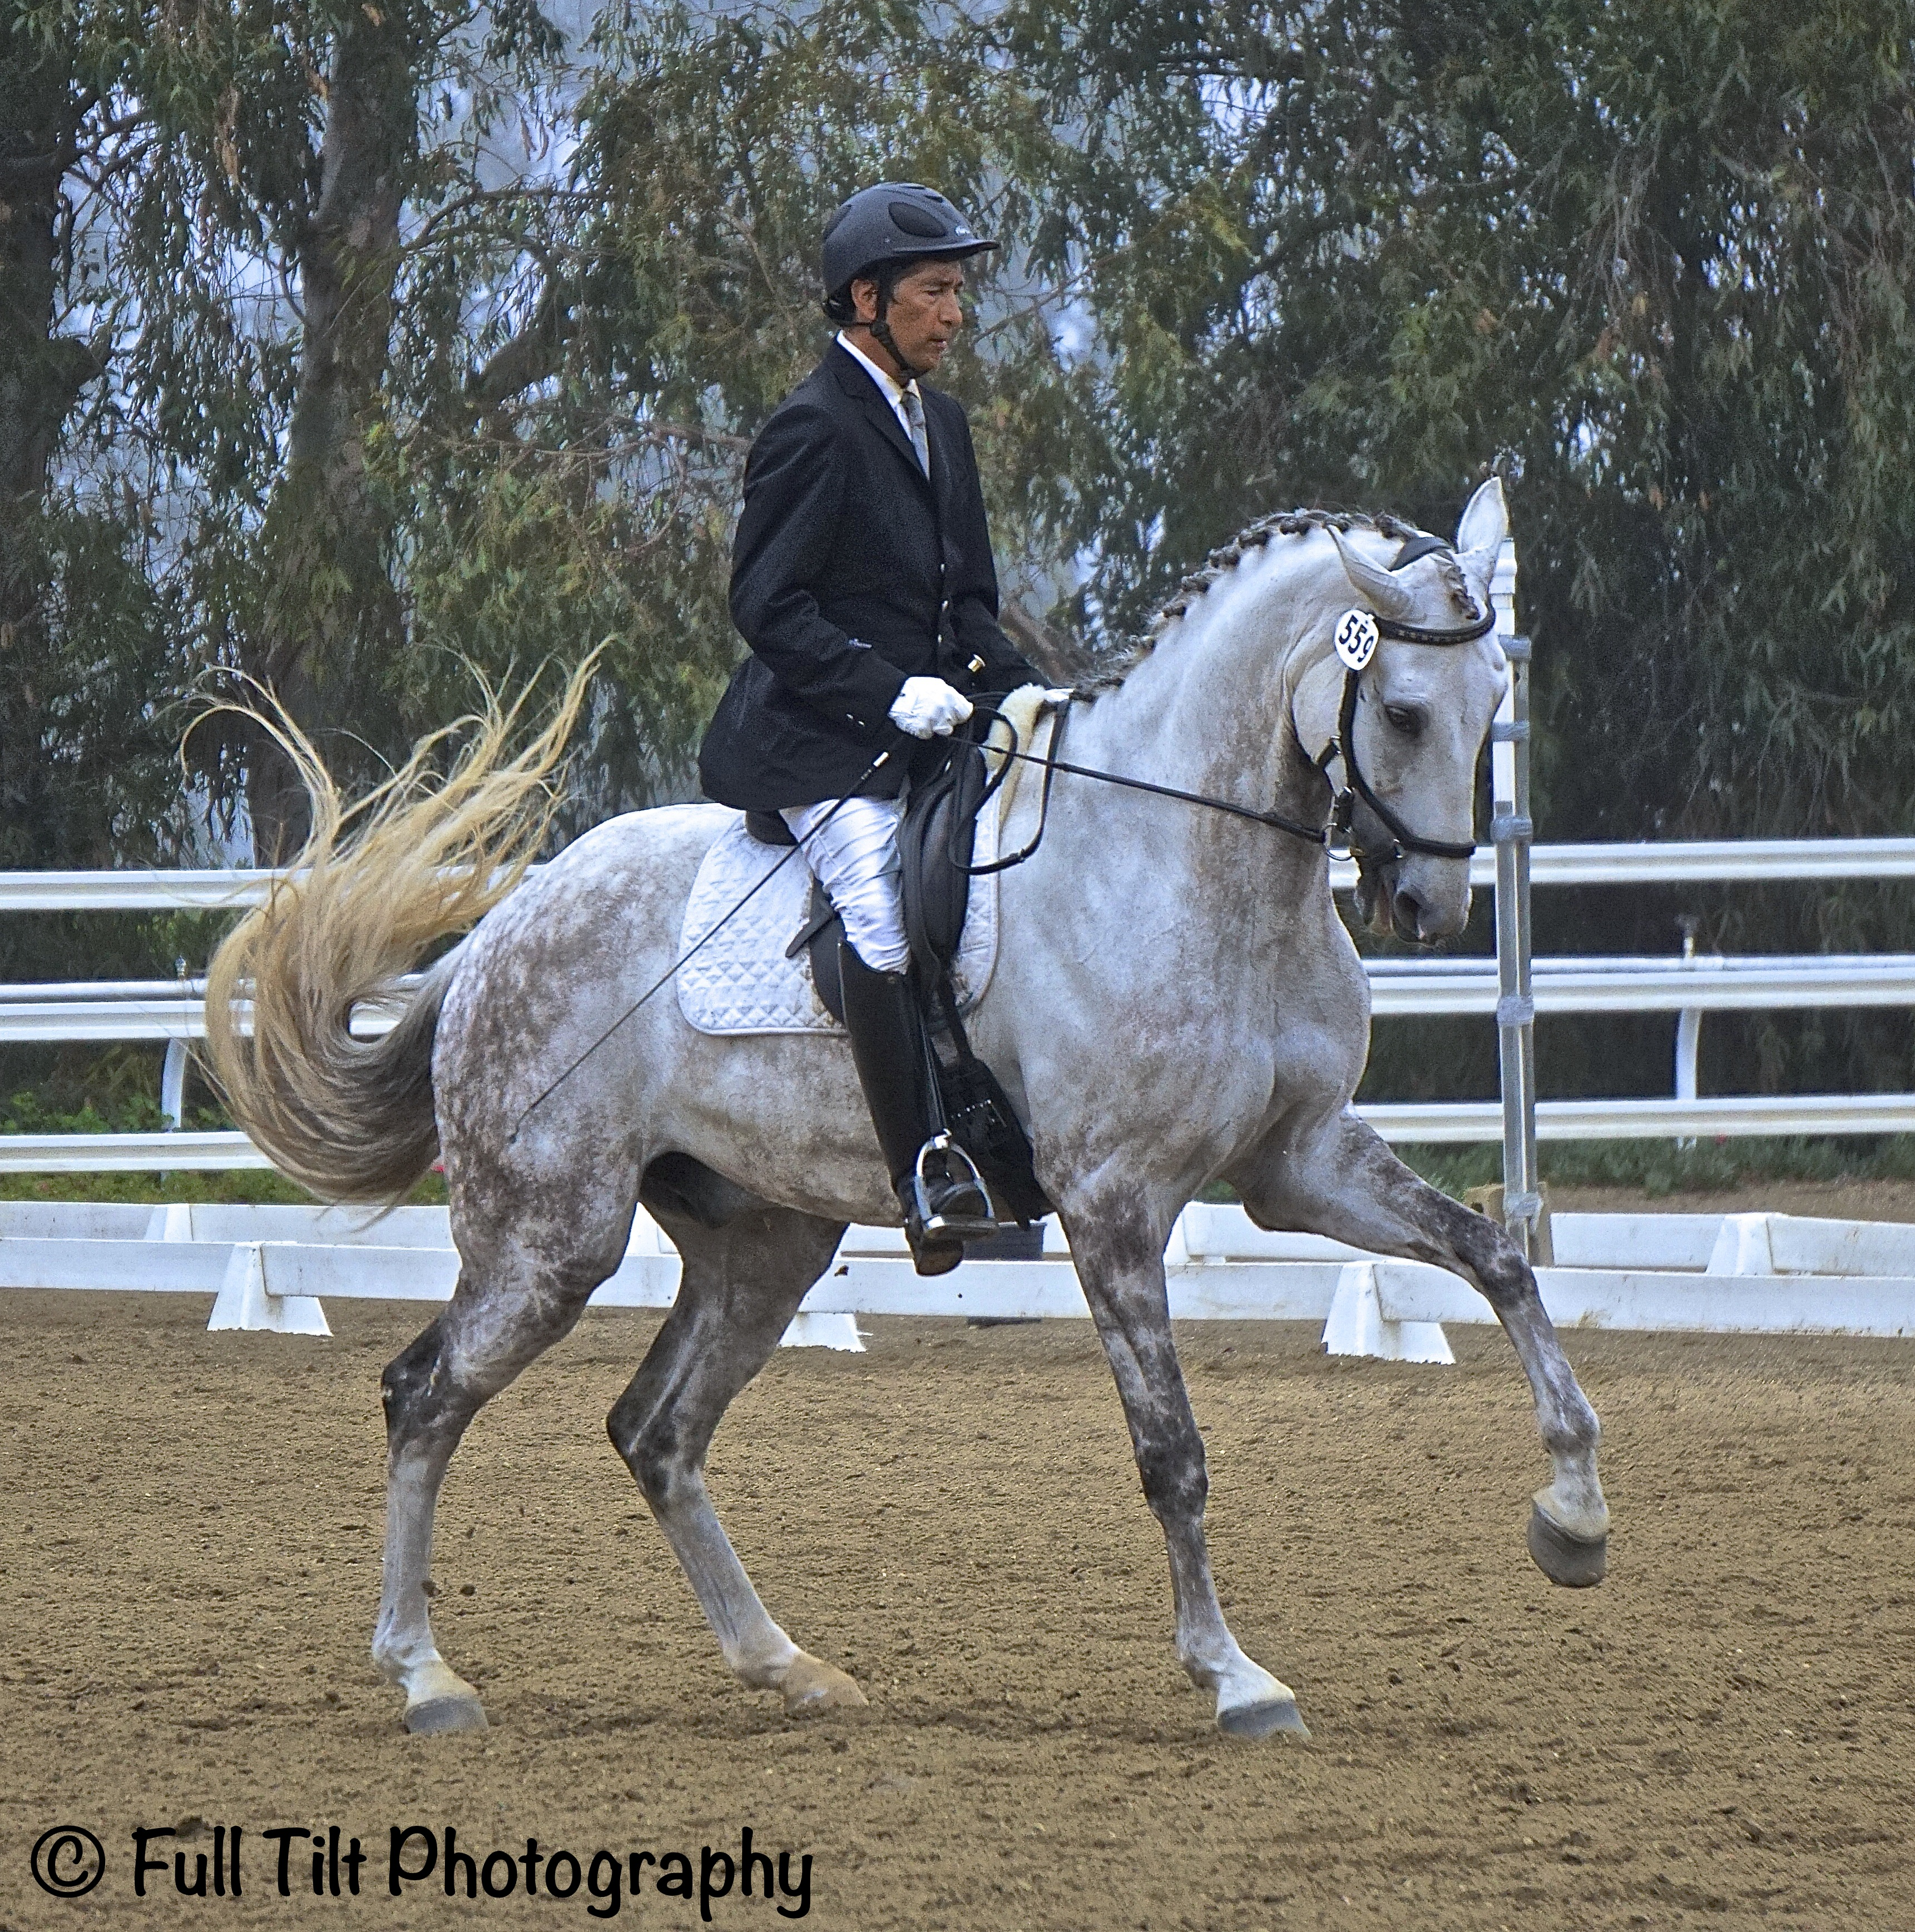 Dressage canter